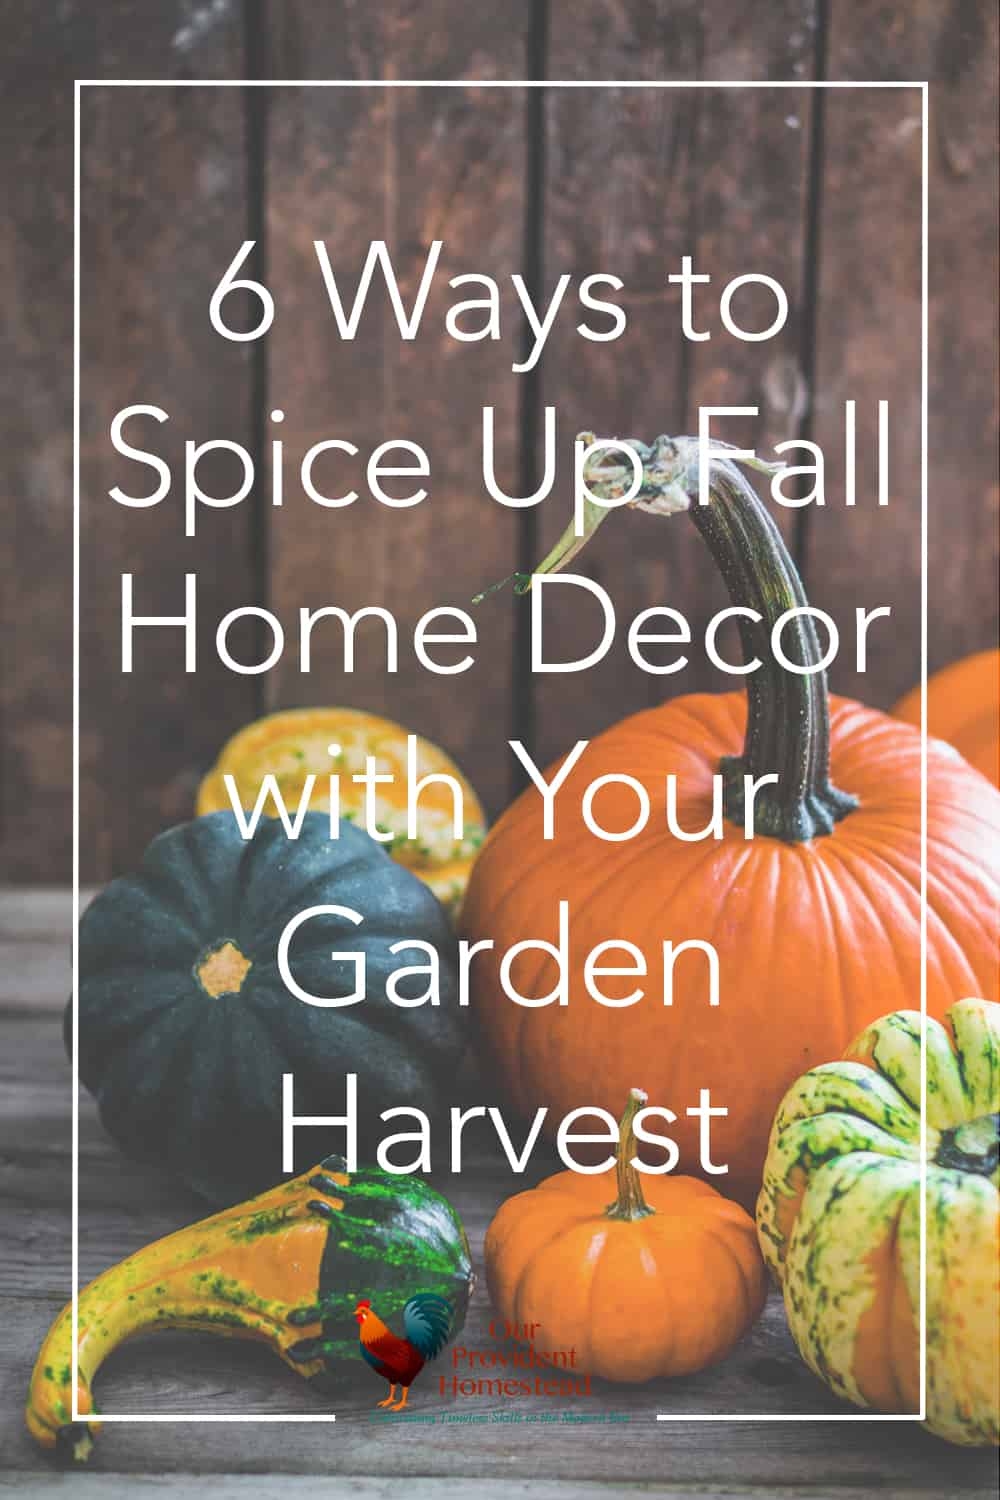 Do you love decorate your home for fall? Click here to see 6 ways to use your garden harvest to decorate for autumn. Fall Home Decor   Garden Harvest   Farmhouse Decor